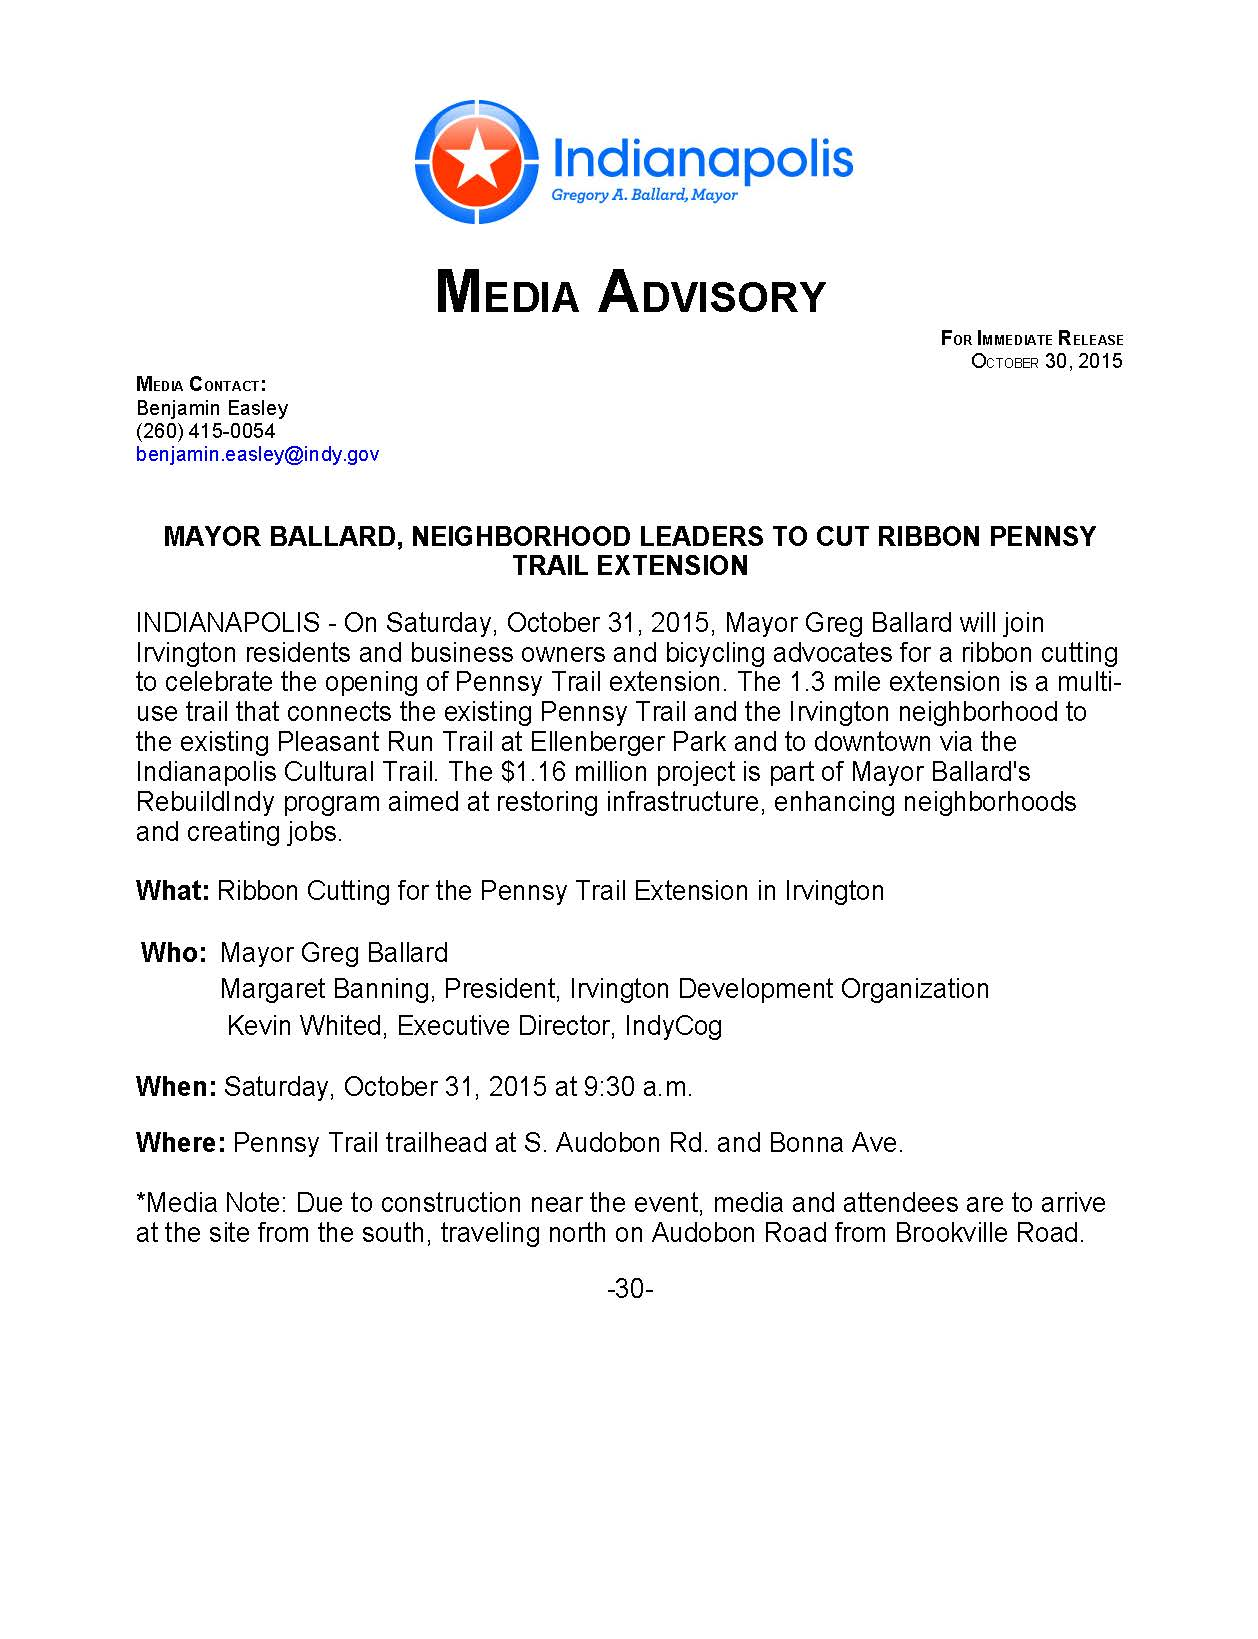 Pennsy Trail Media Advisory